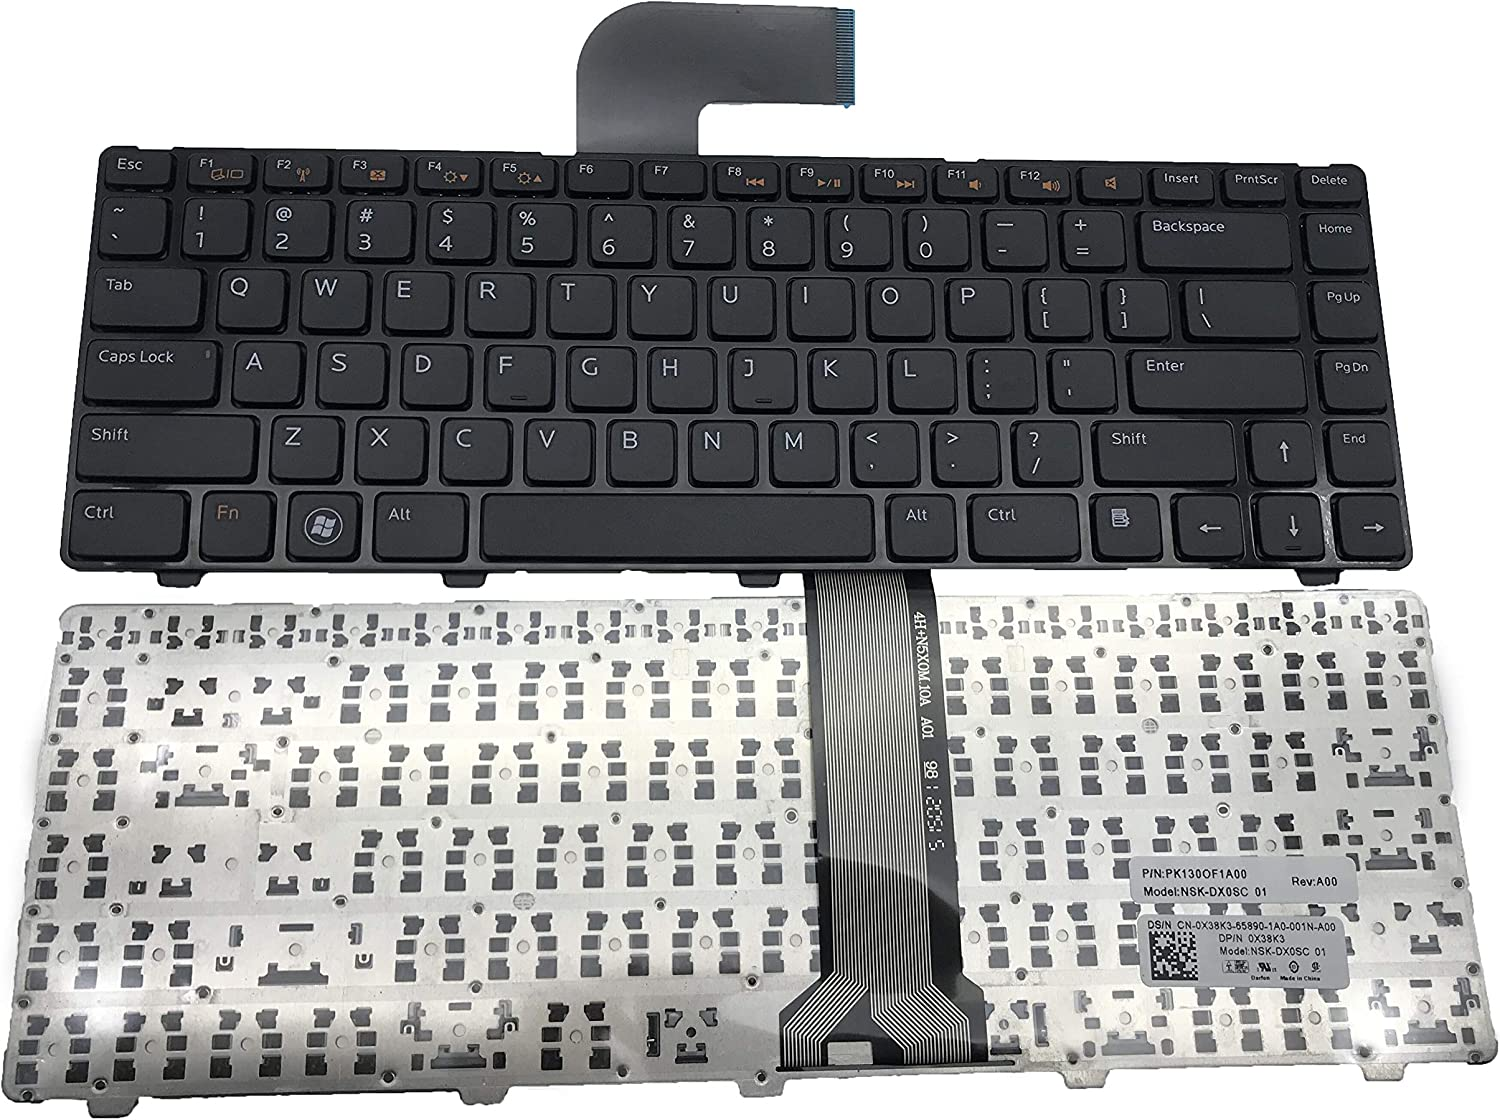 New Keyboard for Dell Inspiron M4110 N4050 M4040 M5040 M5050 N5040 N5050 N4410 M411R / Vostro 3350 3450 3550 V3350 V3450 V3550 / XPS L502X US PK130OF5B00 SG-49950-XUA 13072702539 Black Frame N4110